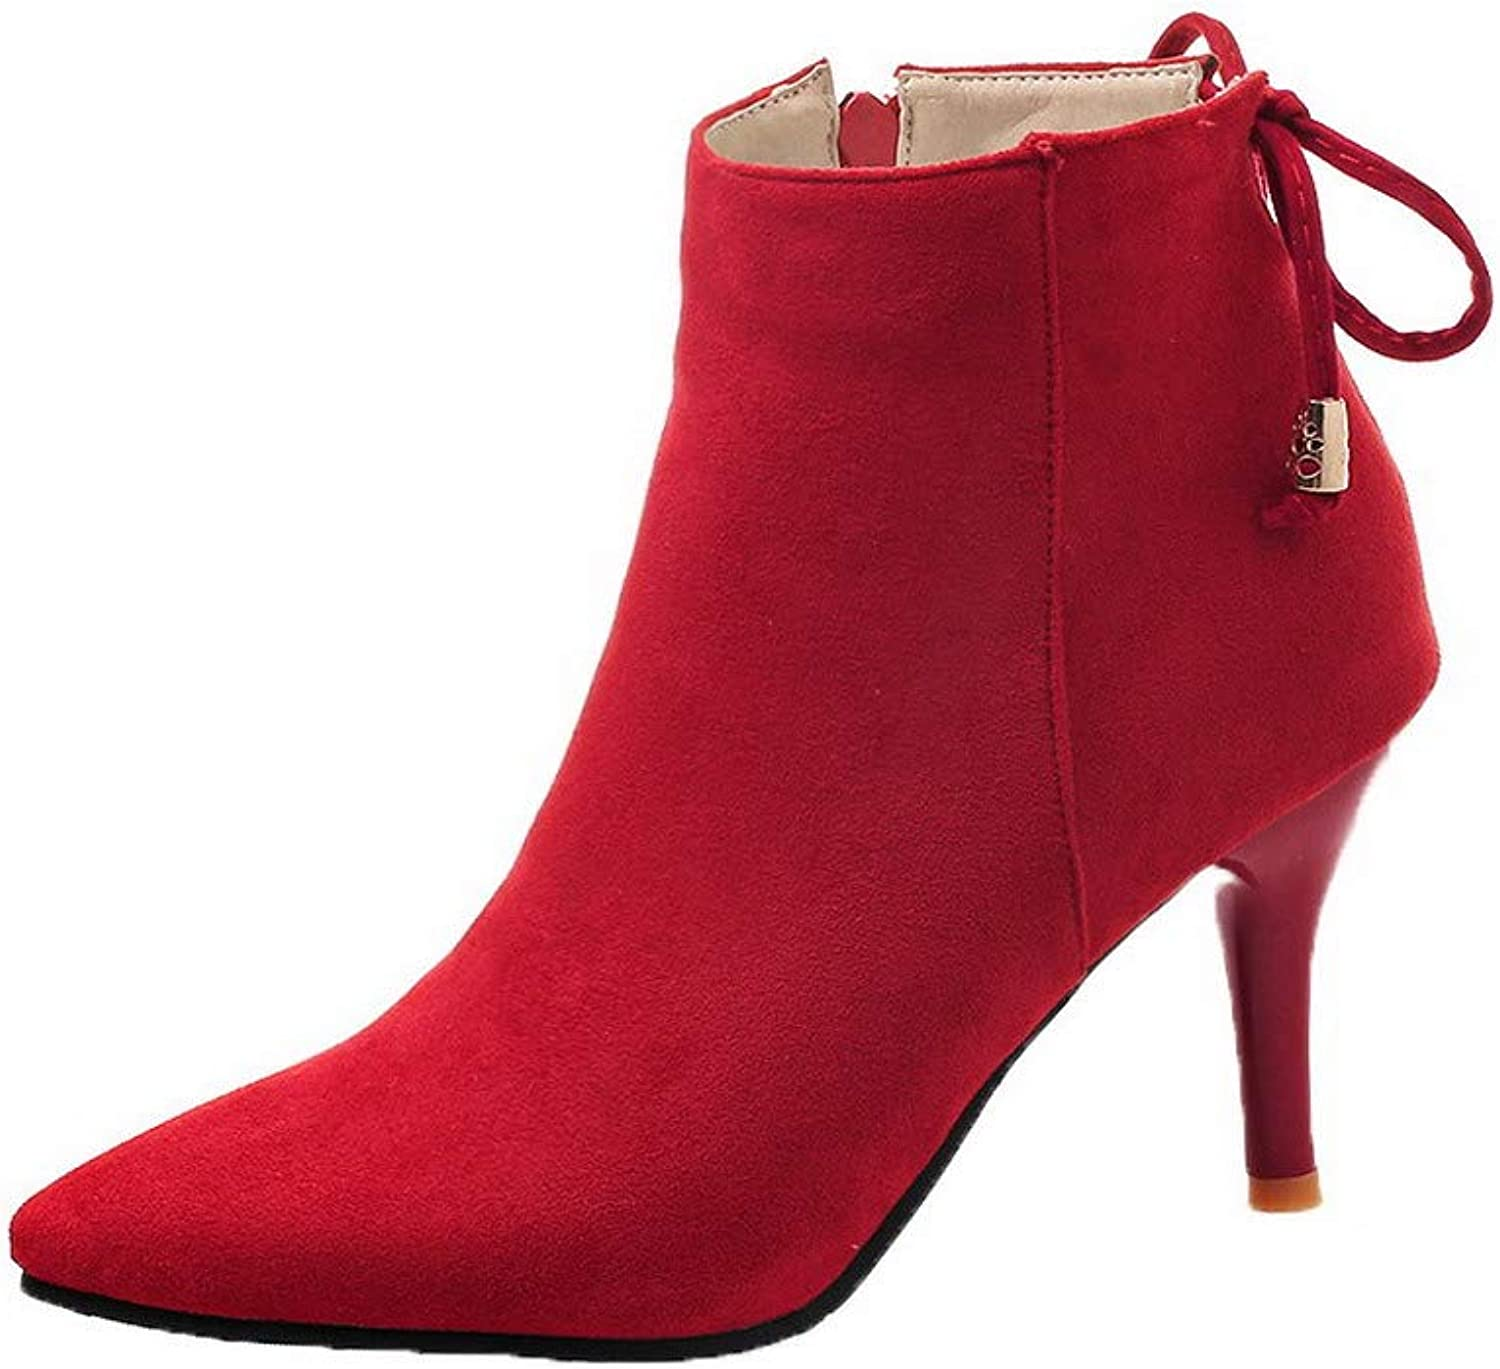 AllhqFashion Women's Solid Imitated Suede High-Heels Zipper Closed-Toe Boots, FBUXD125943